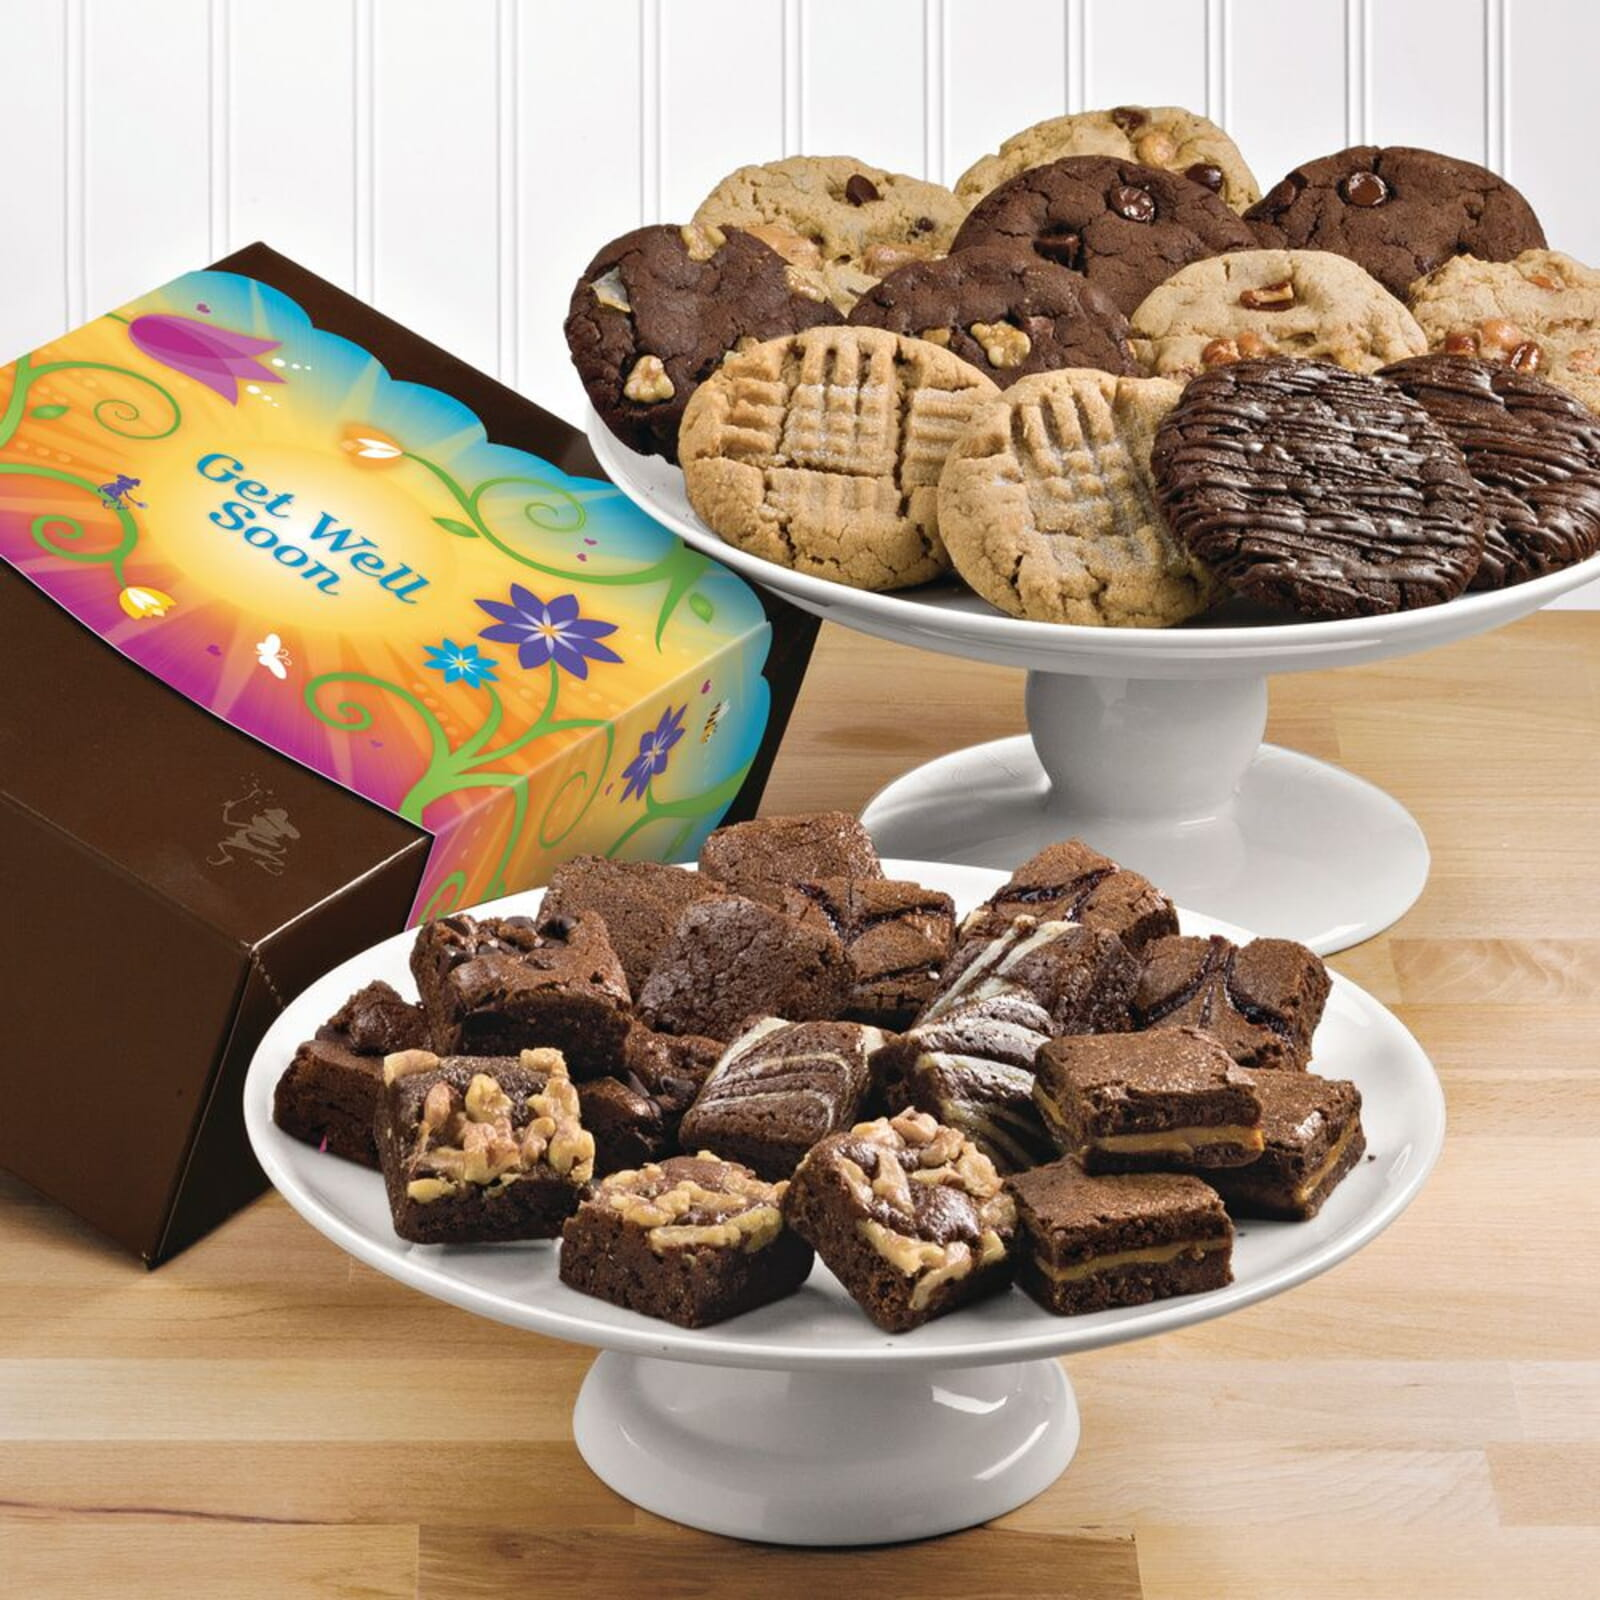 Get Well Deluxe Cookie & Morsel Combo